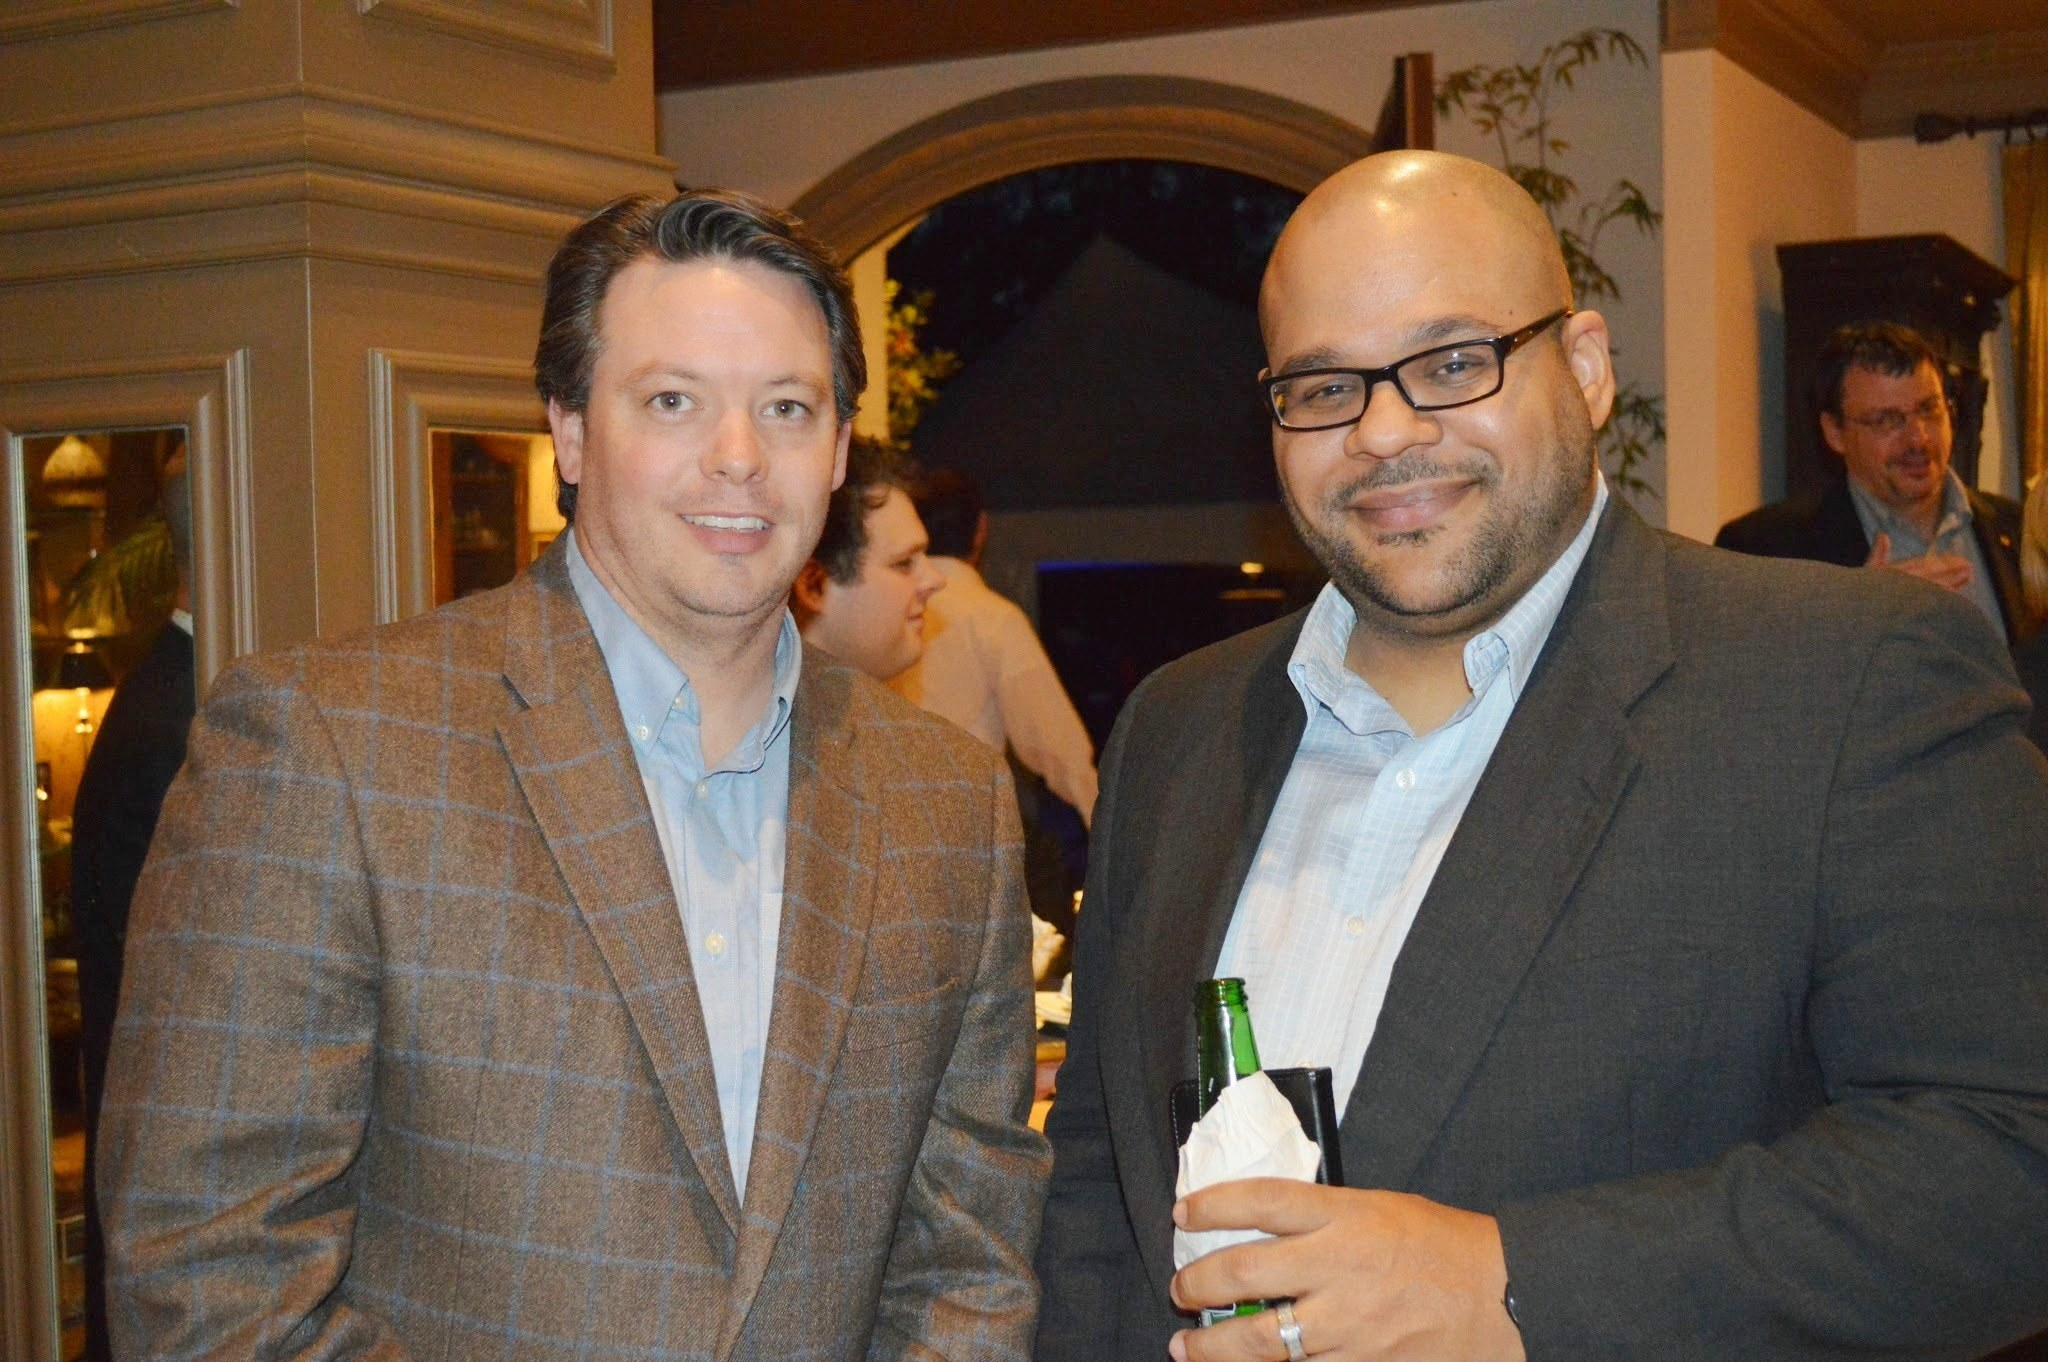 Pictured at the VIP event is Eric Thiergood (right) with guest Marc Berry of BOI Consulting